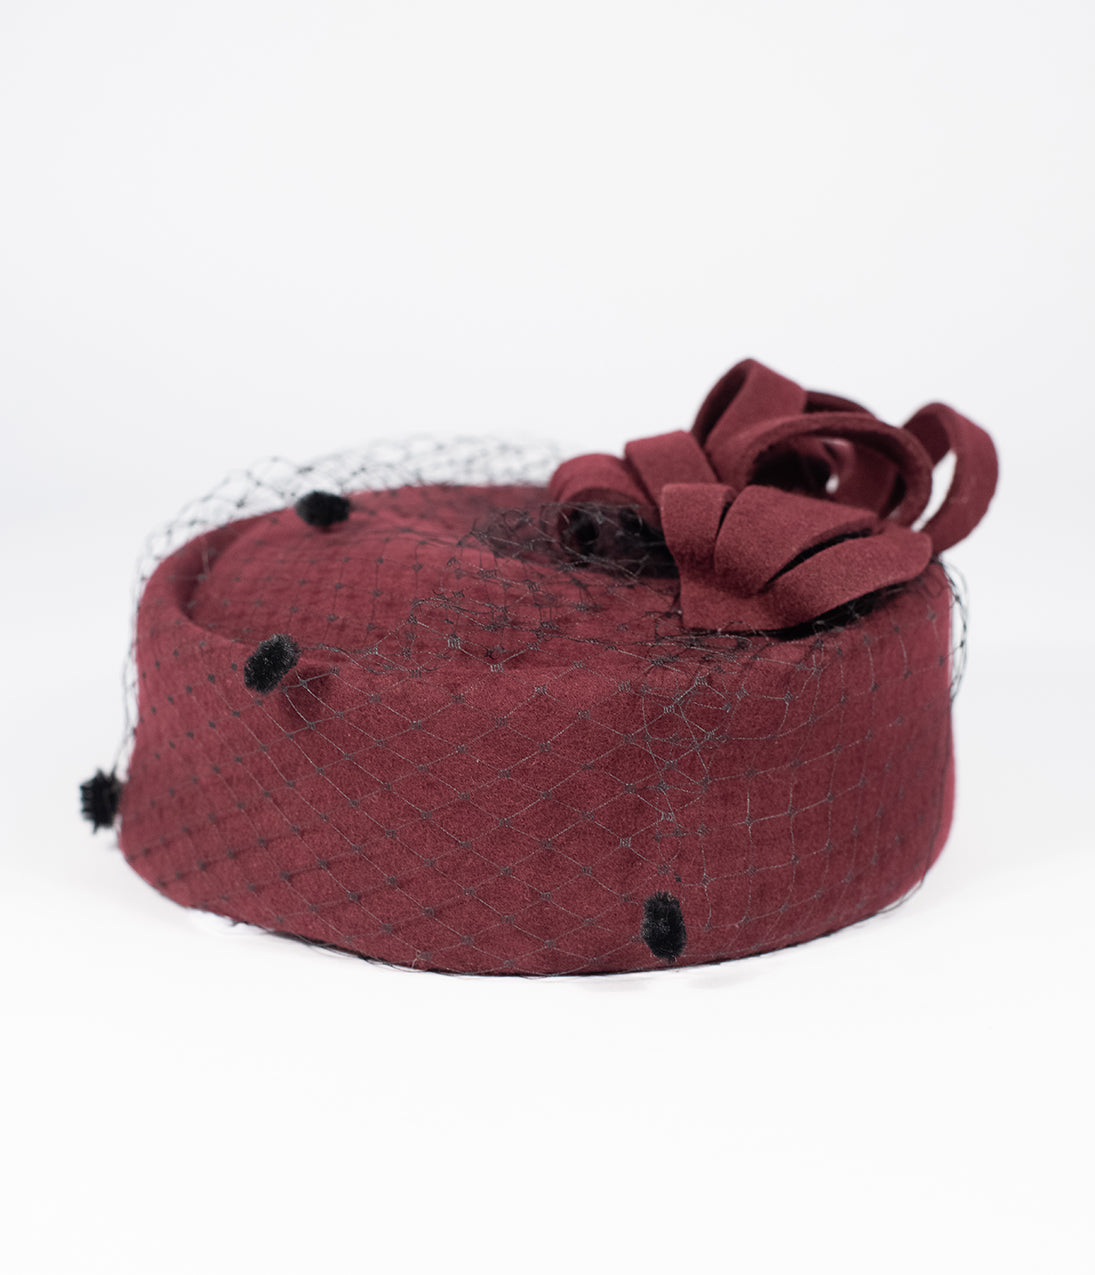 1950s Women's Hat Styles & History Unique Vintage Burgundy Red Wool Netted Pillbox Hat $47.00 AT vintagedancer.com